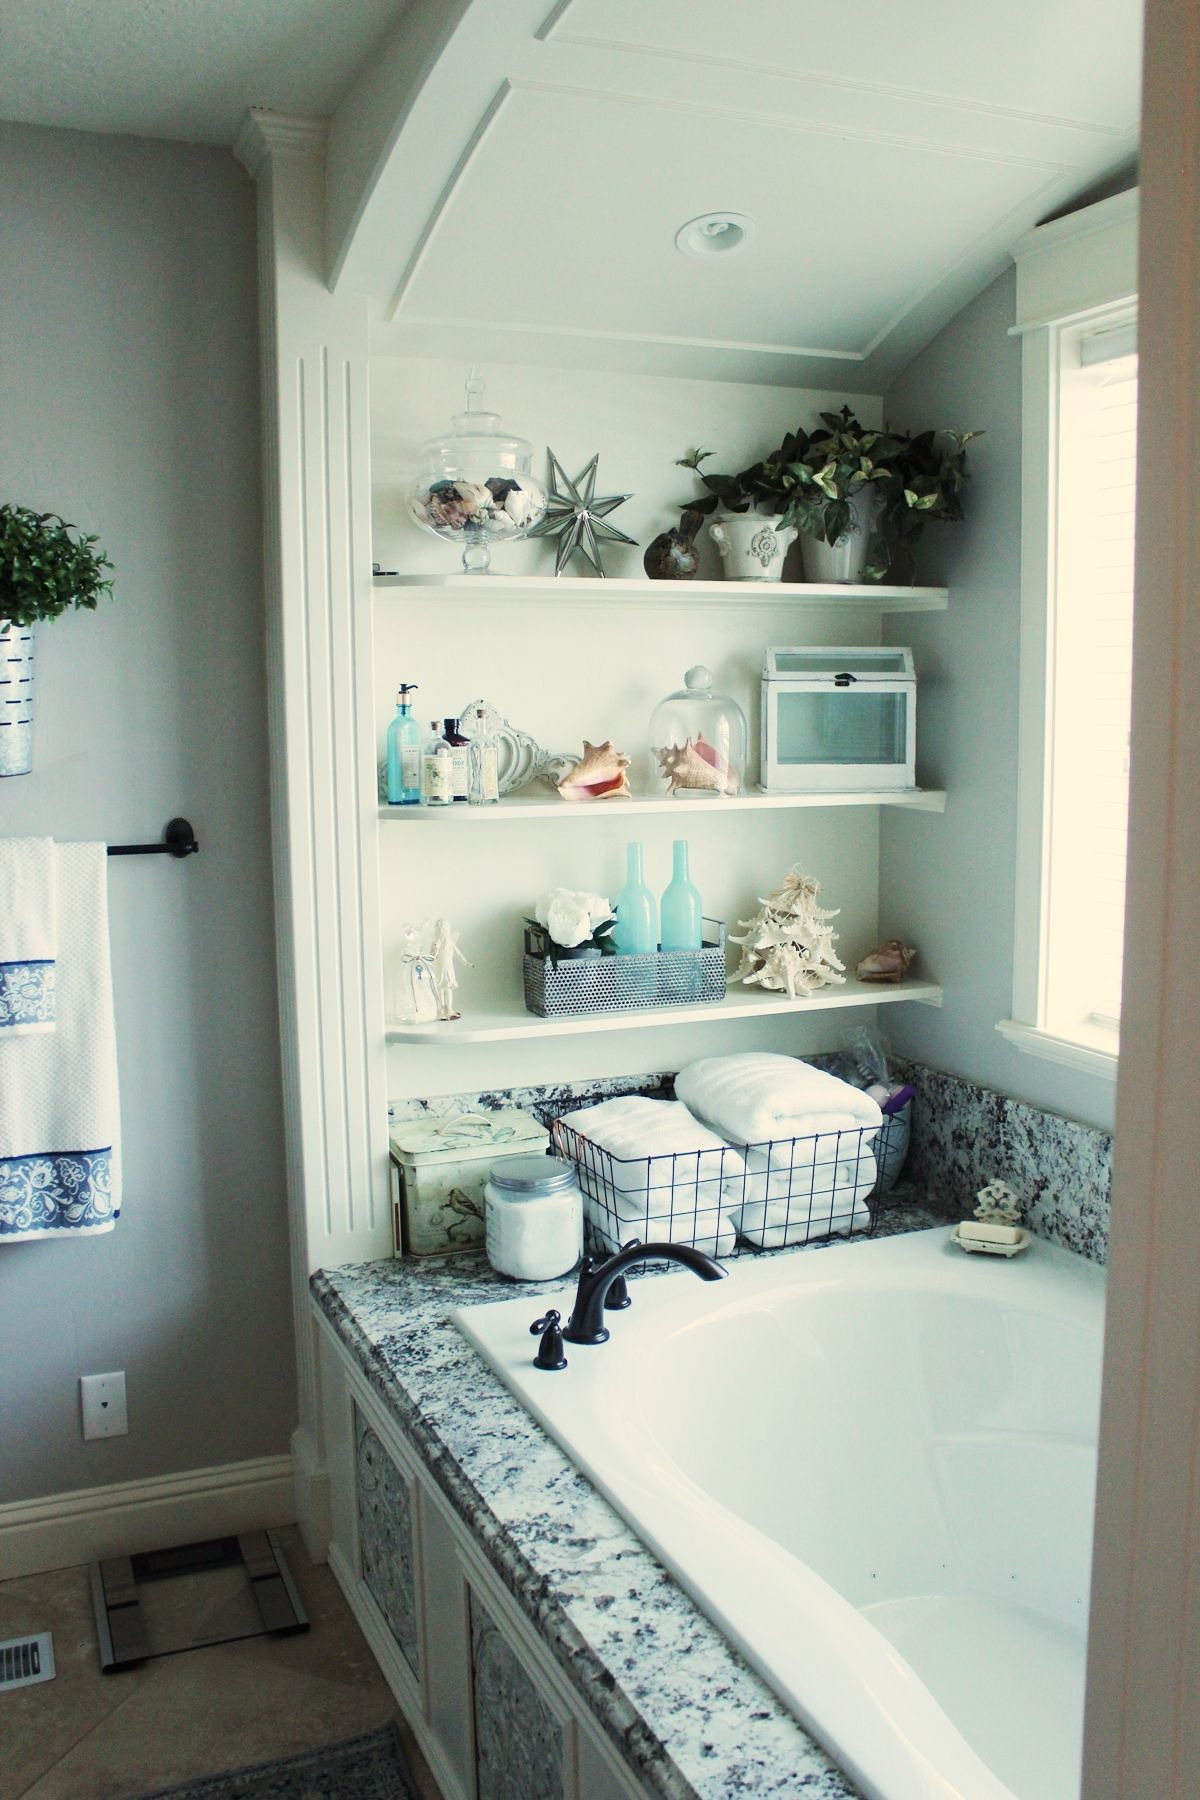 Decorating Ideas for Bathrooms On A Budget Elegant Inspiring Ideas for Decorating On A Bud